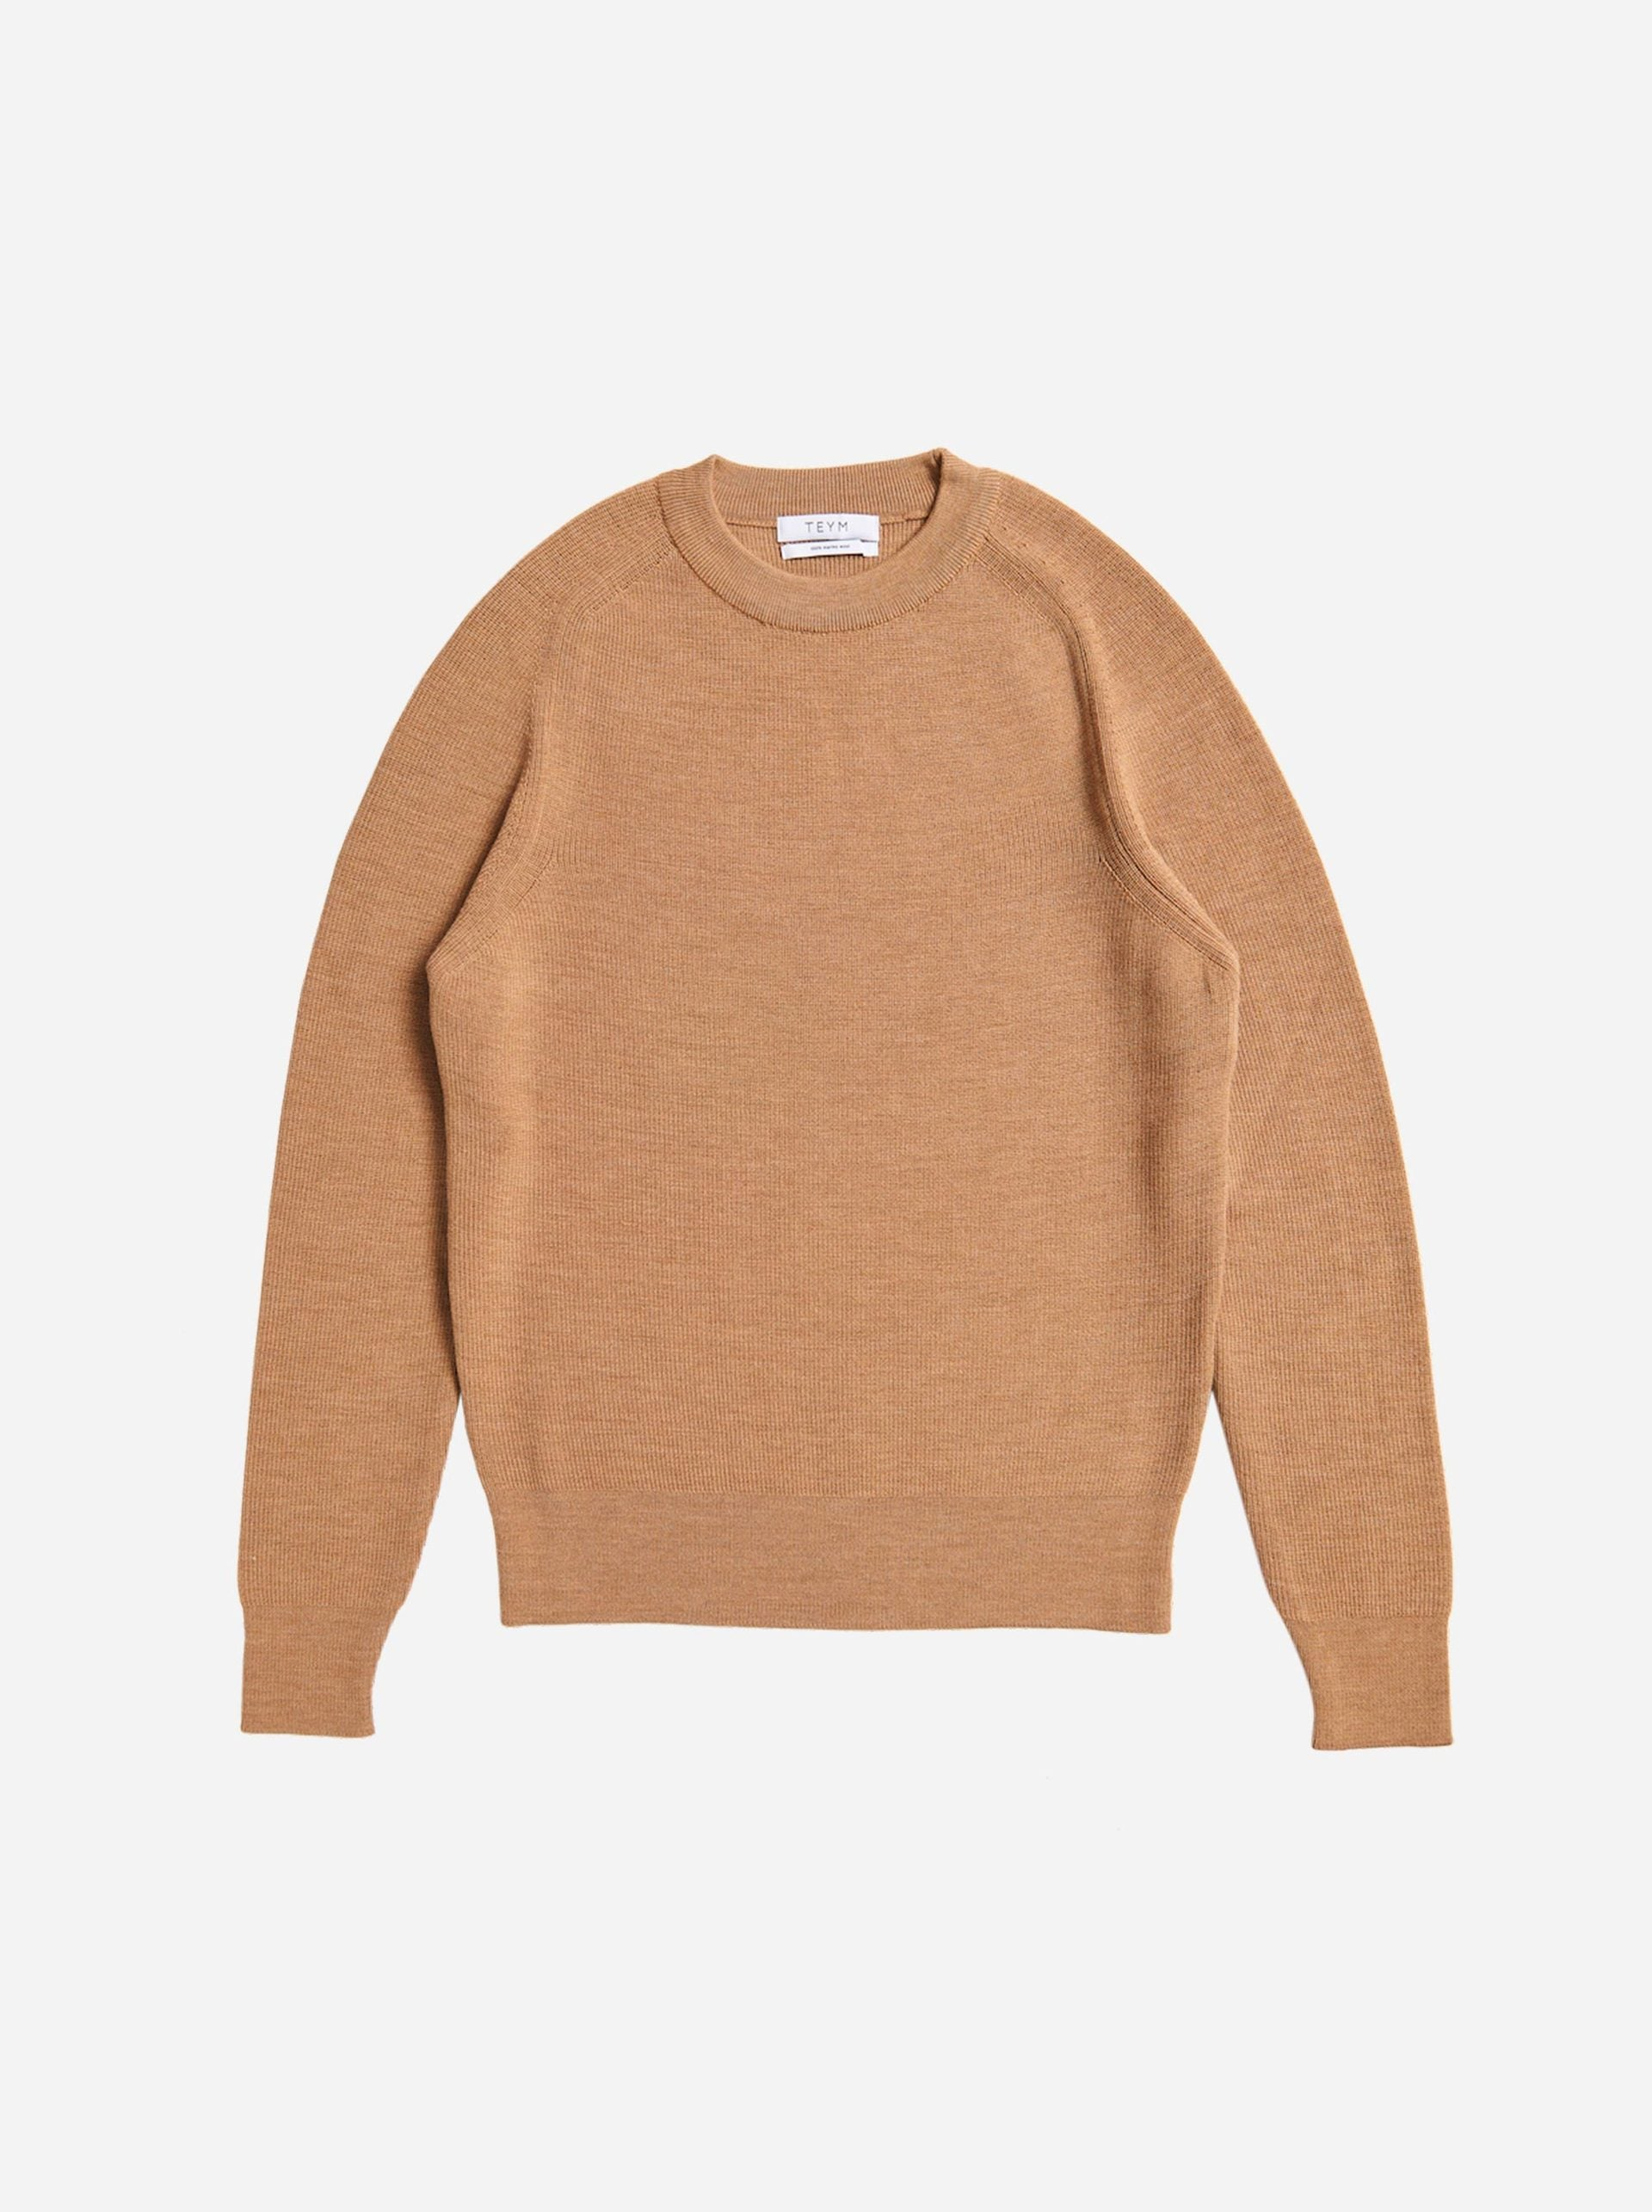 Woolmark certified merino sweater Teym conscious collective Camel product